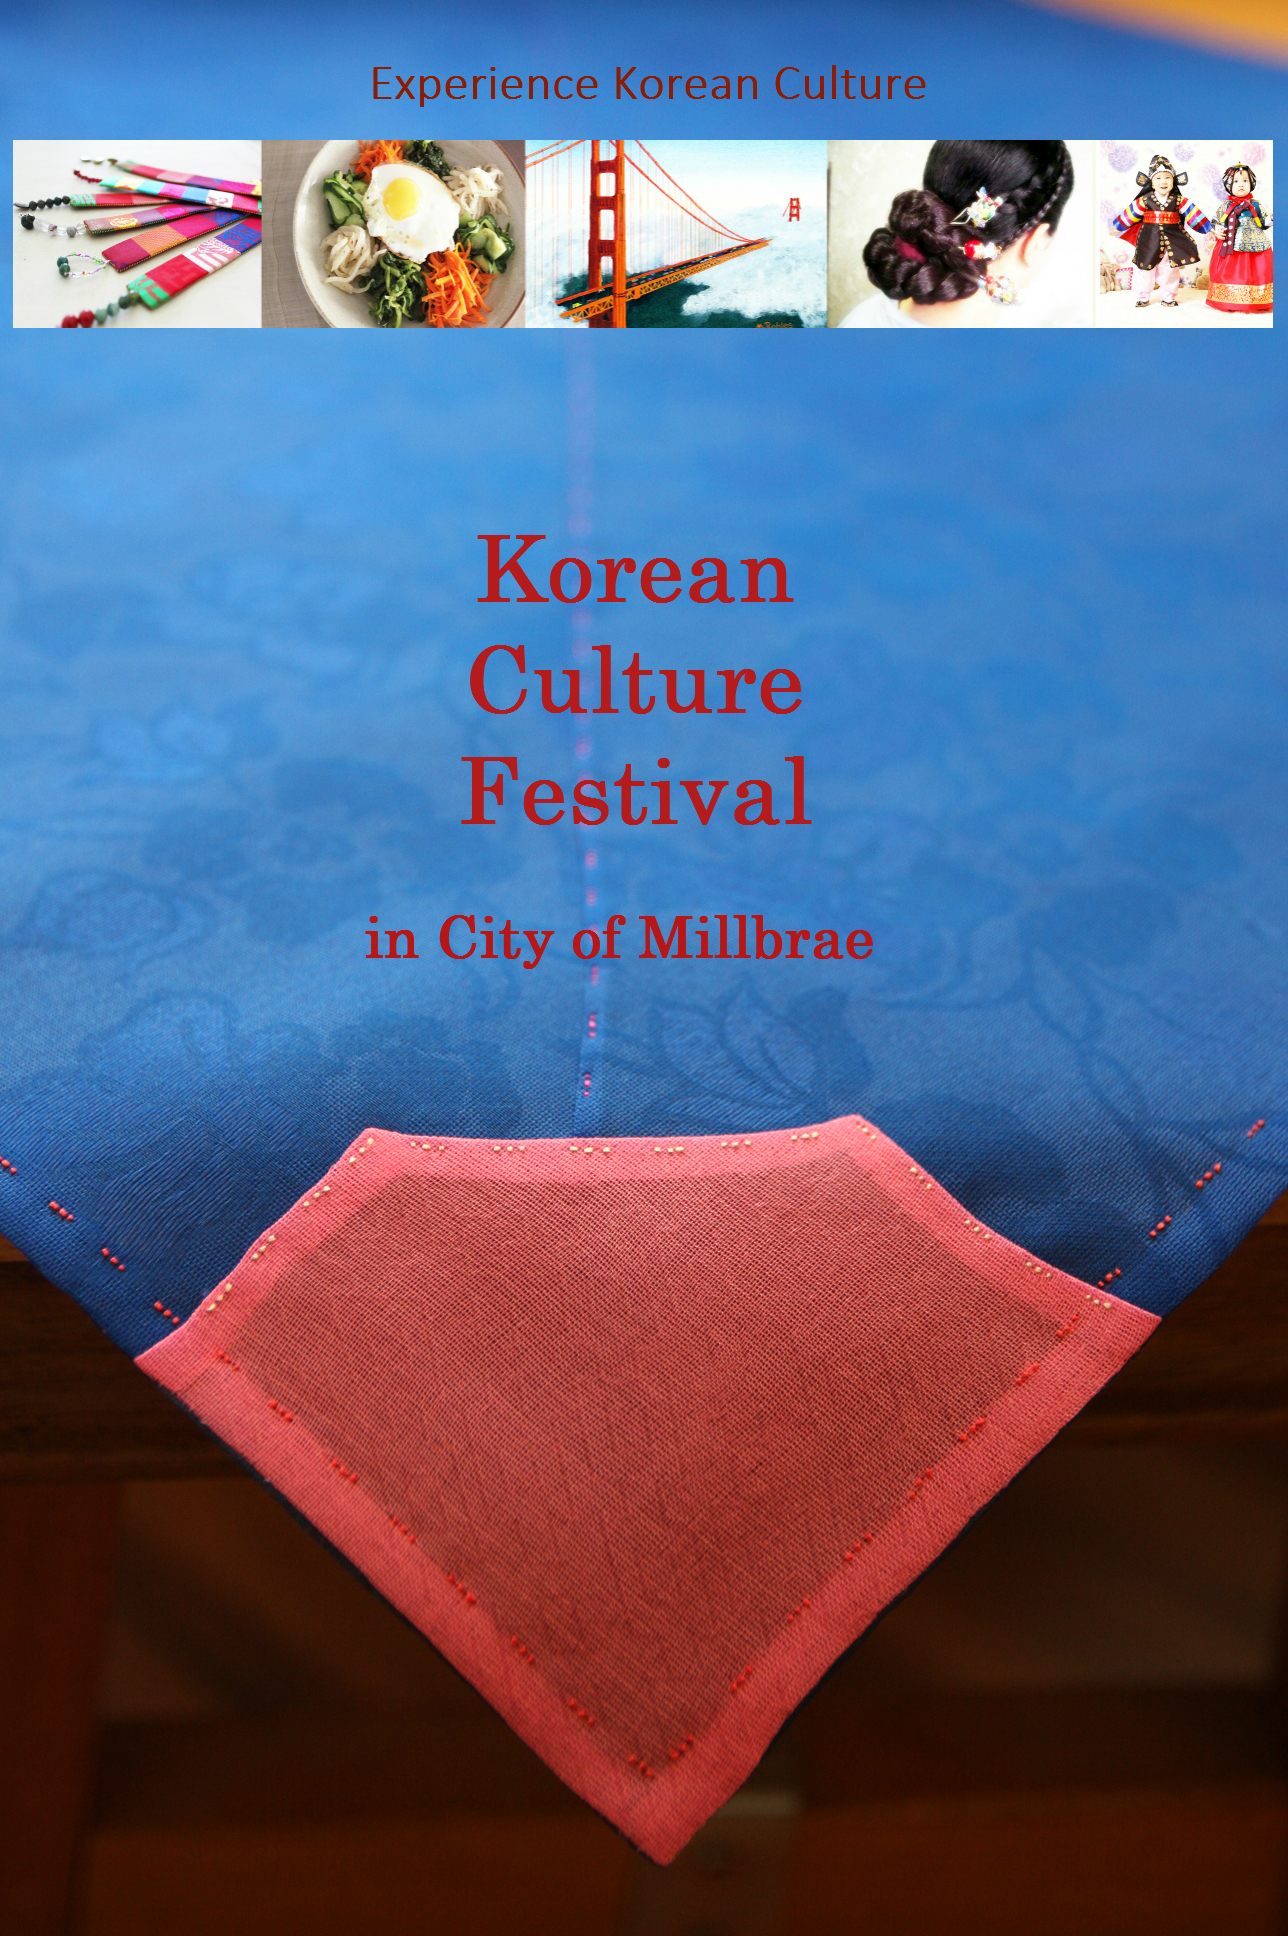 The Korean Culture Festival celebrates Korean culture and introduces various aspects of its culture, including music, dance, cuisine and festive activities.